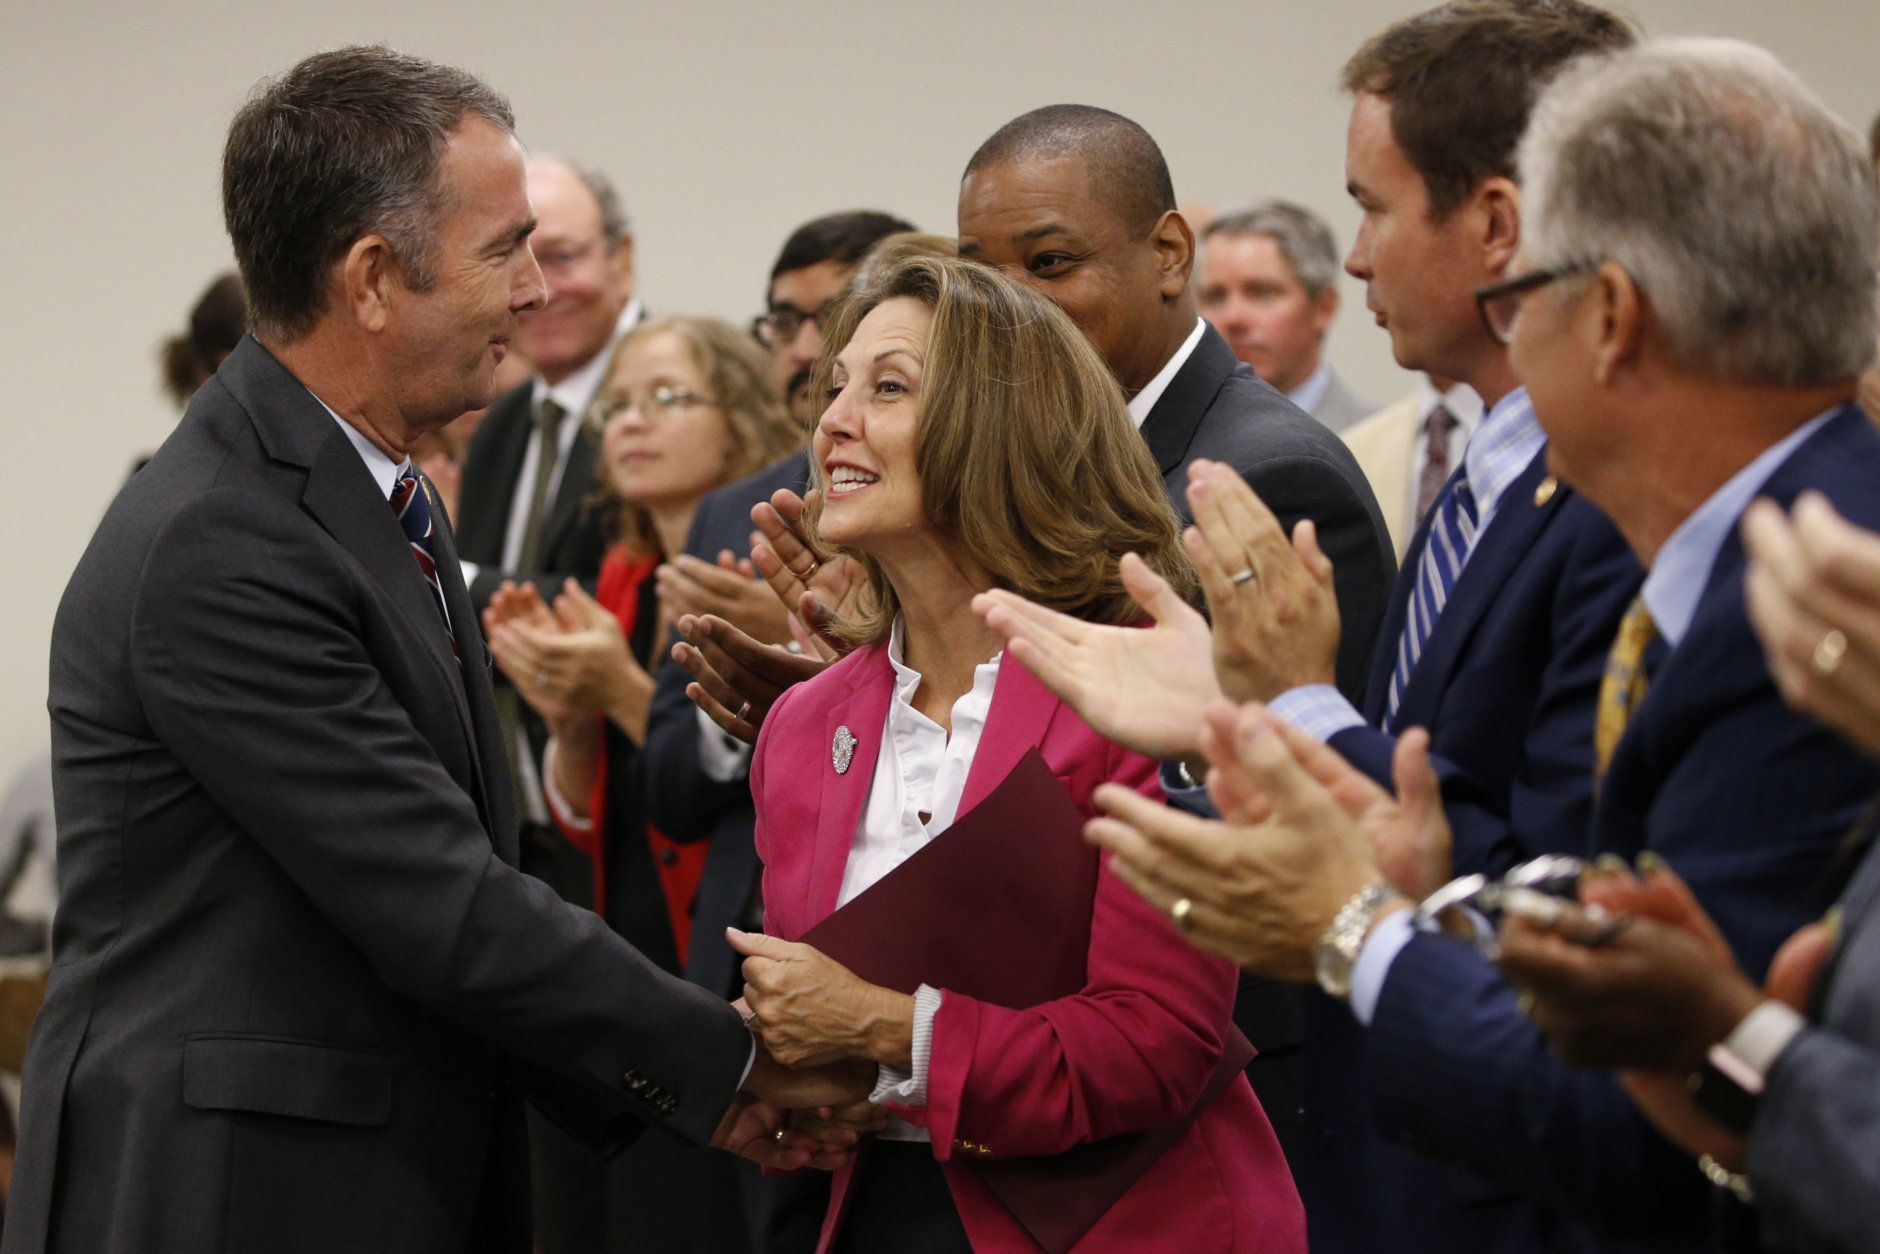 Virginia Gov. Ralph Northam, left, greets his wife, Pam, after delivering his budget update before a joint meeting of the House and Senate money committees at the Capitol in Richmond, Va., Tuesday, Aug. 20, 2019. (AP Photo/Steve Helber)